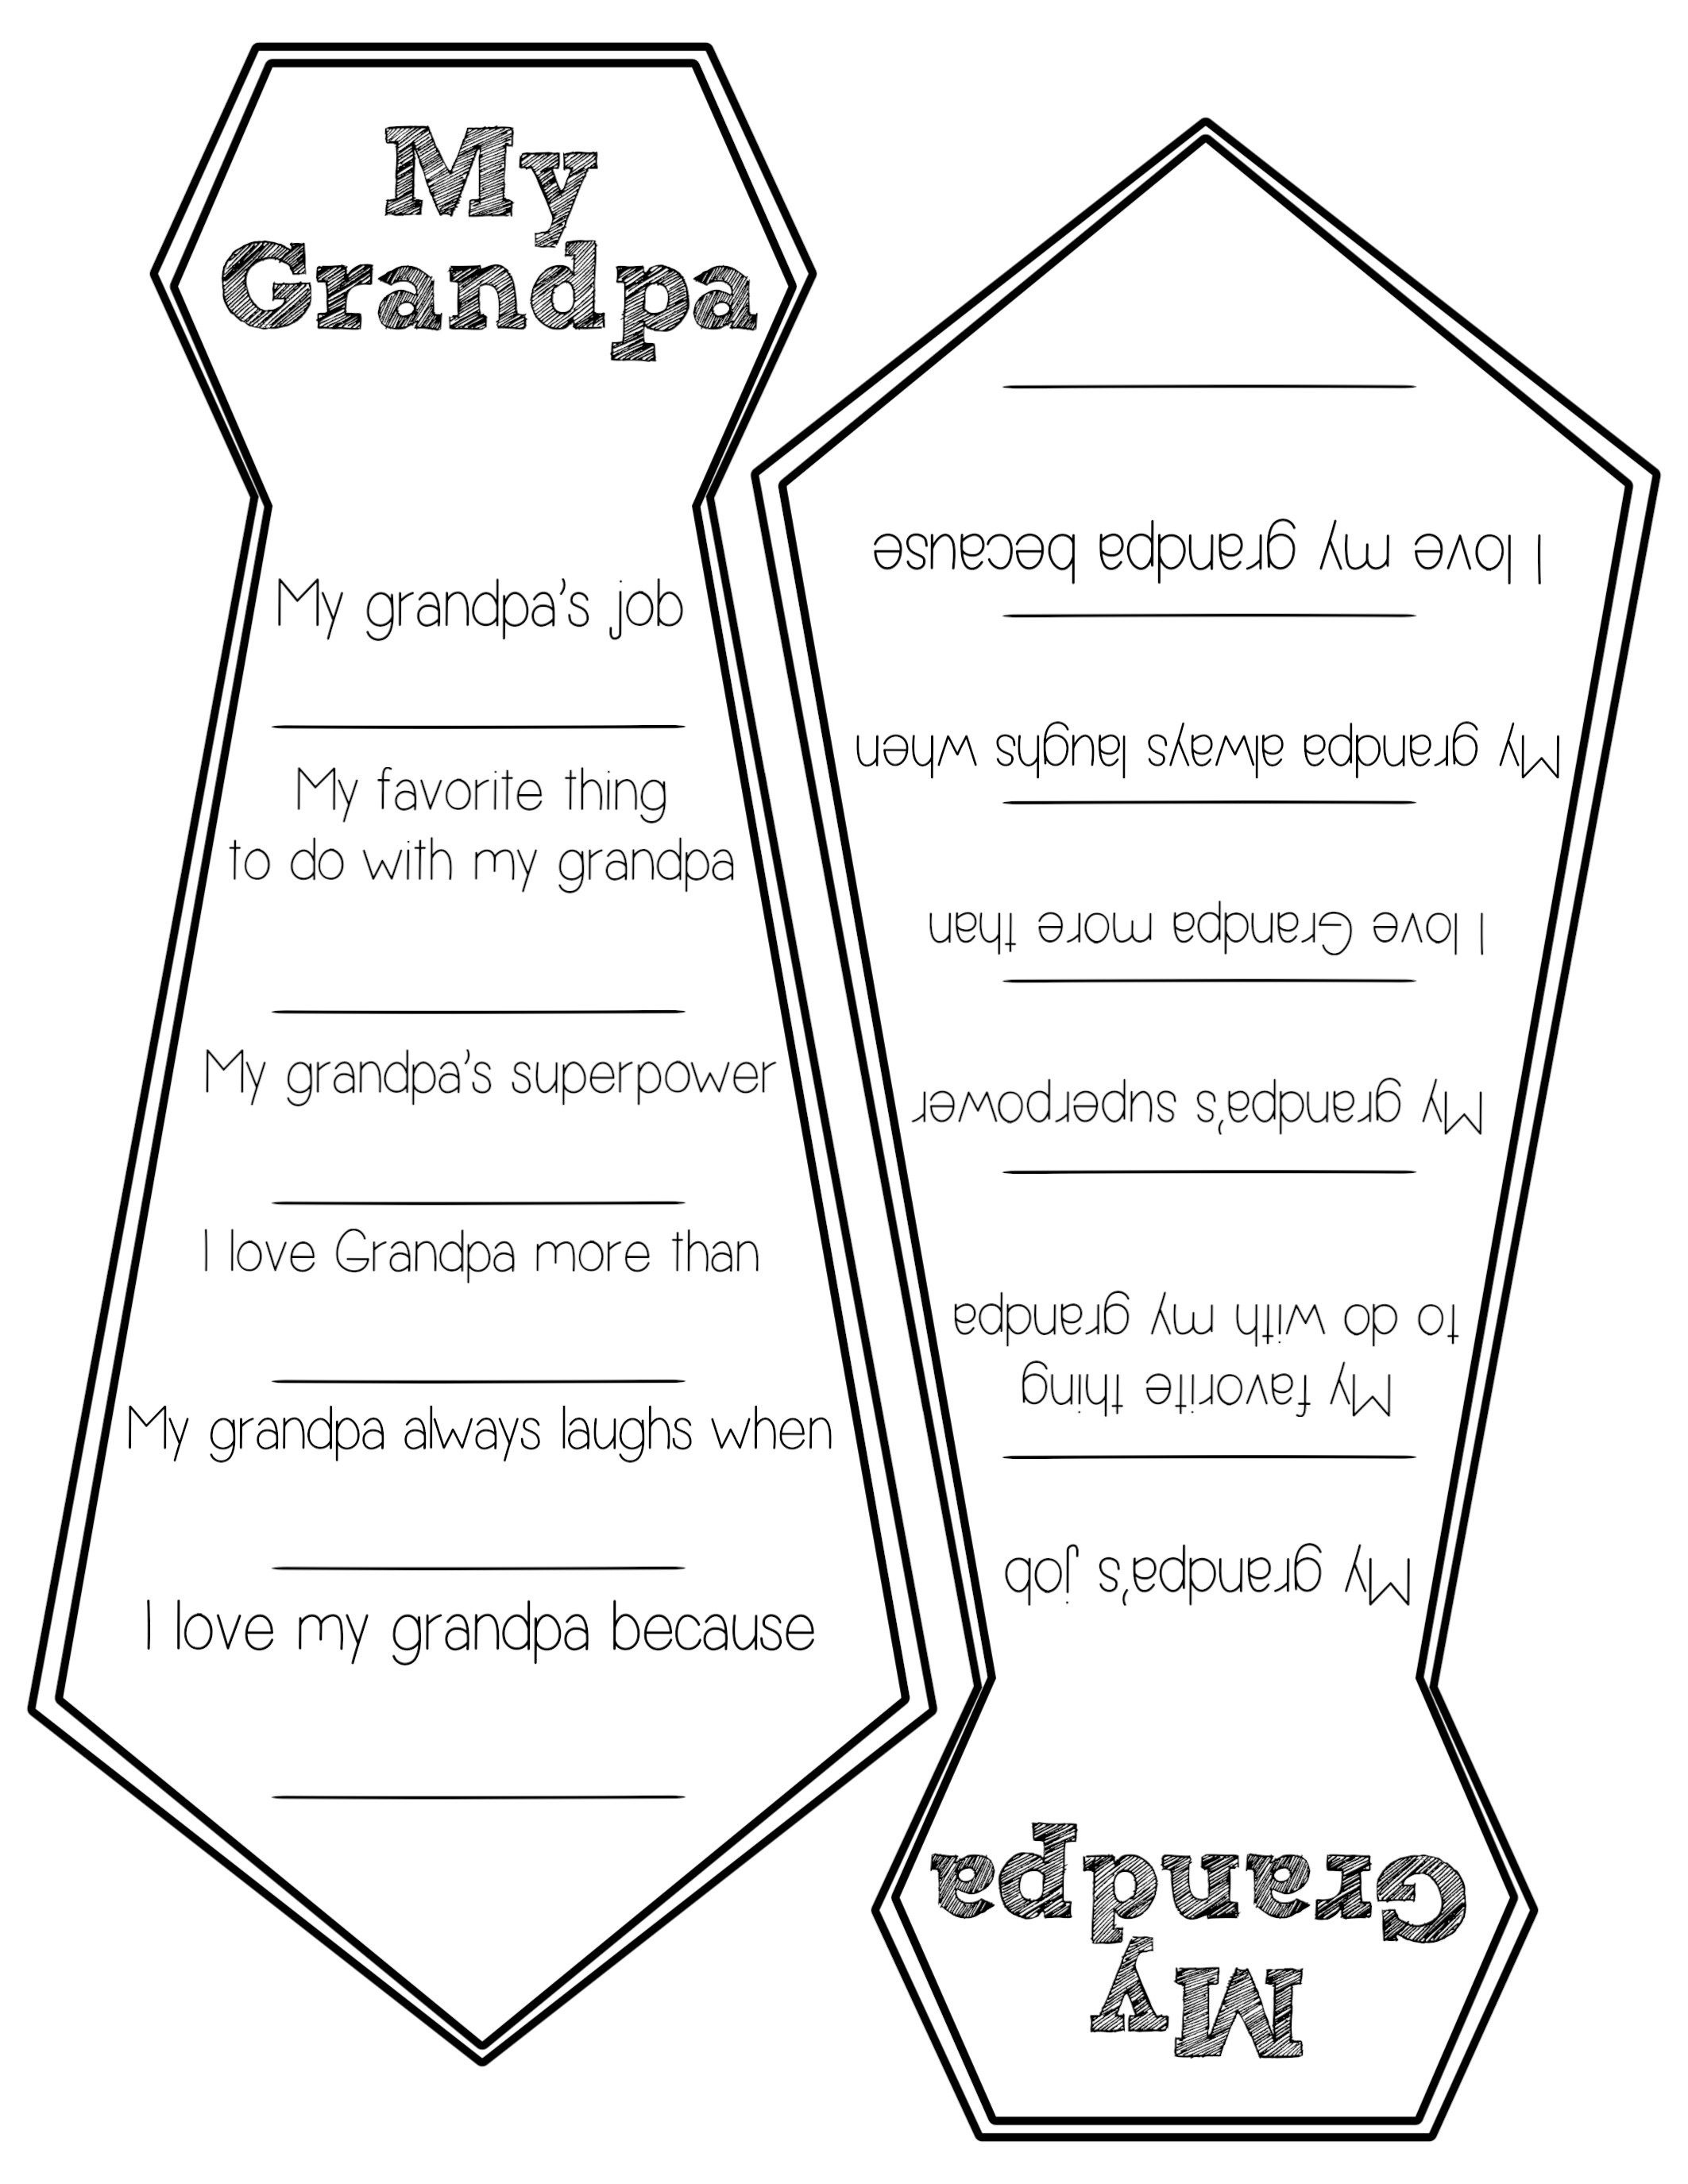 Father's Day Free Printable Cards | Father's Day | Homemade Gifts - Father's Day Card Printable Free